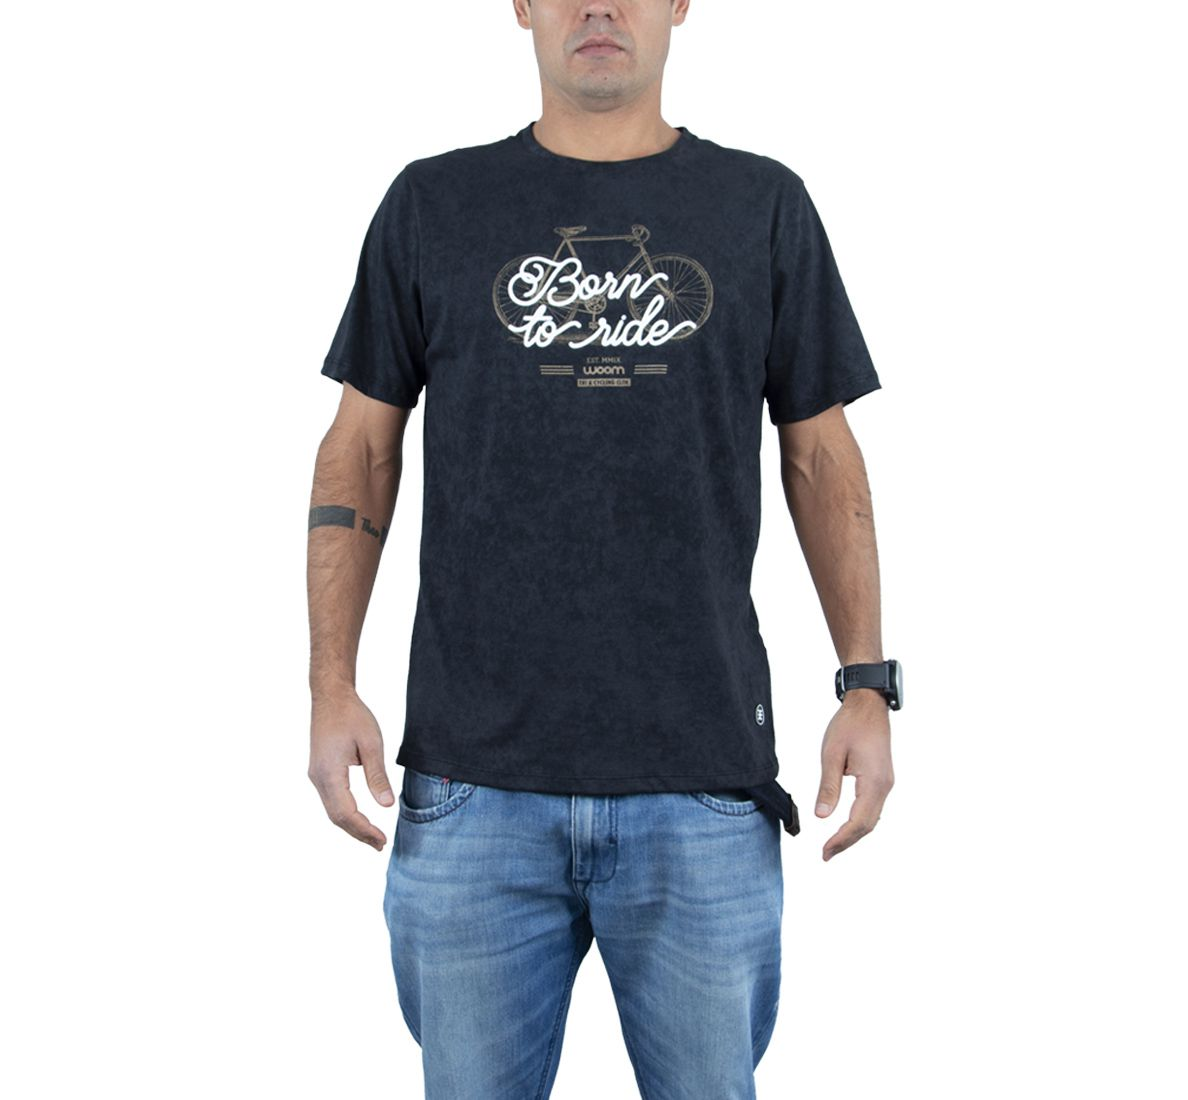 Camiseta Born To Ride Masc - Preto - Woom 247